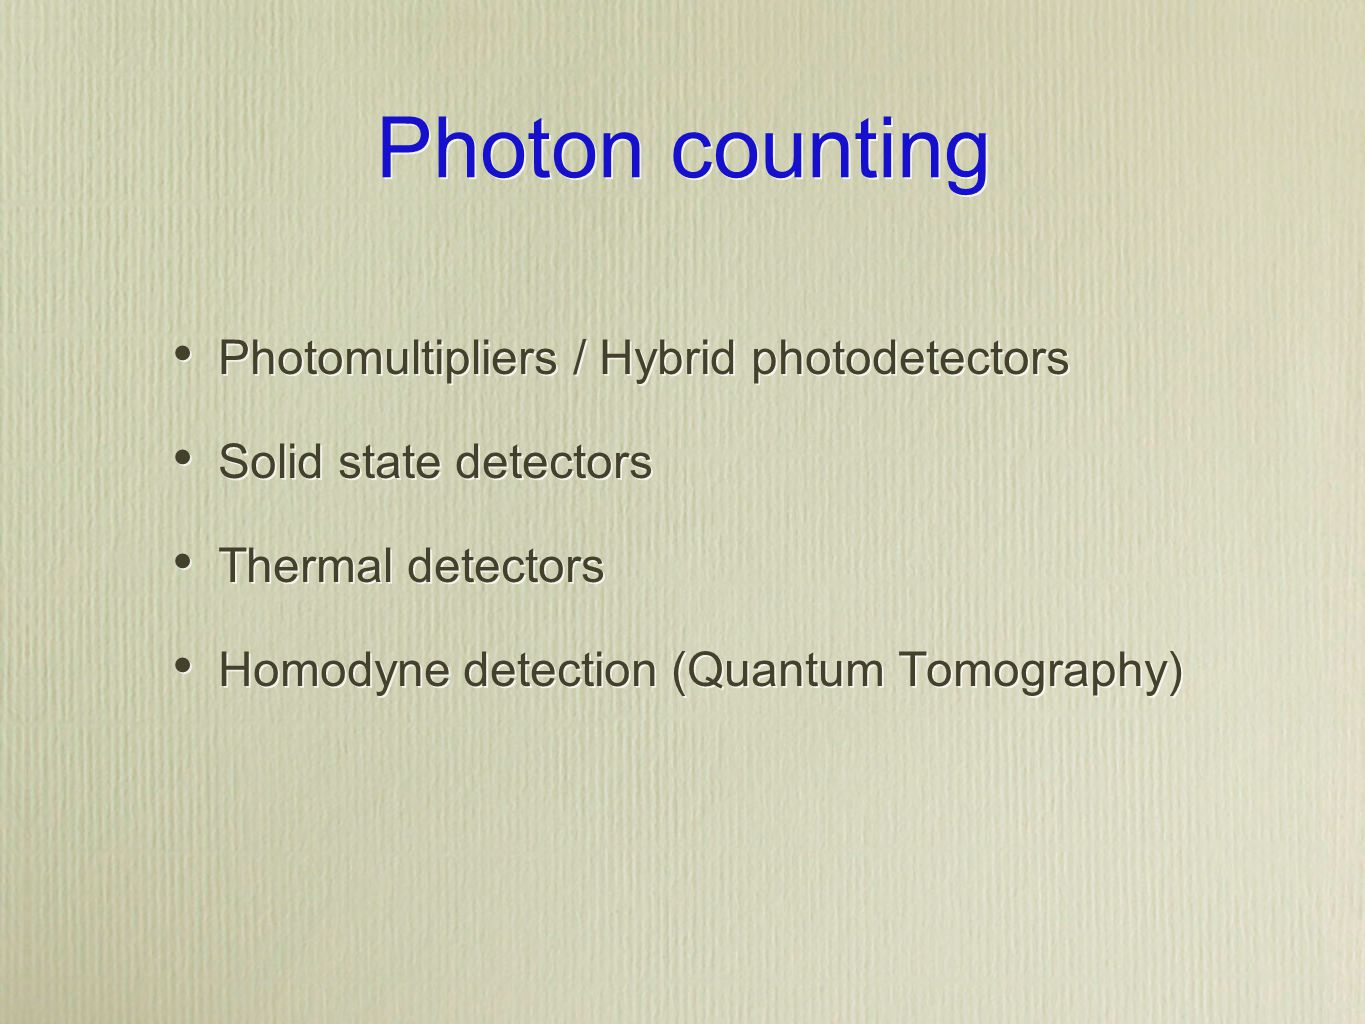 Photon counting Photomultipliers / Hybrid photodetectors Solid state detectors Thermal detectors Homodyne detection (Quantum Tomography) Photomultipliers / Hybrid photodetectors Solid state detectors Thermal detectors Homodyne detection (Quantum Tomography)